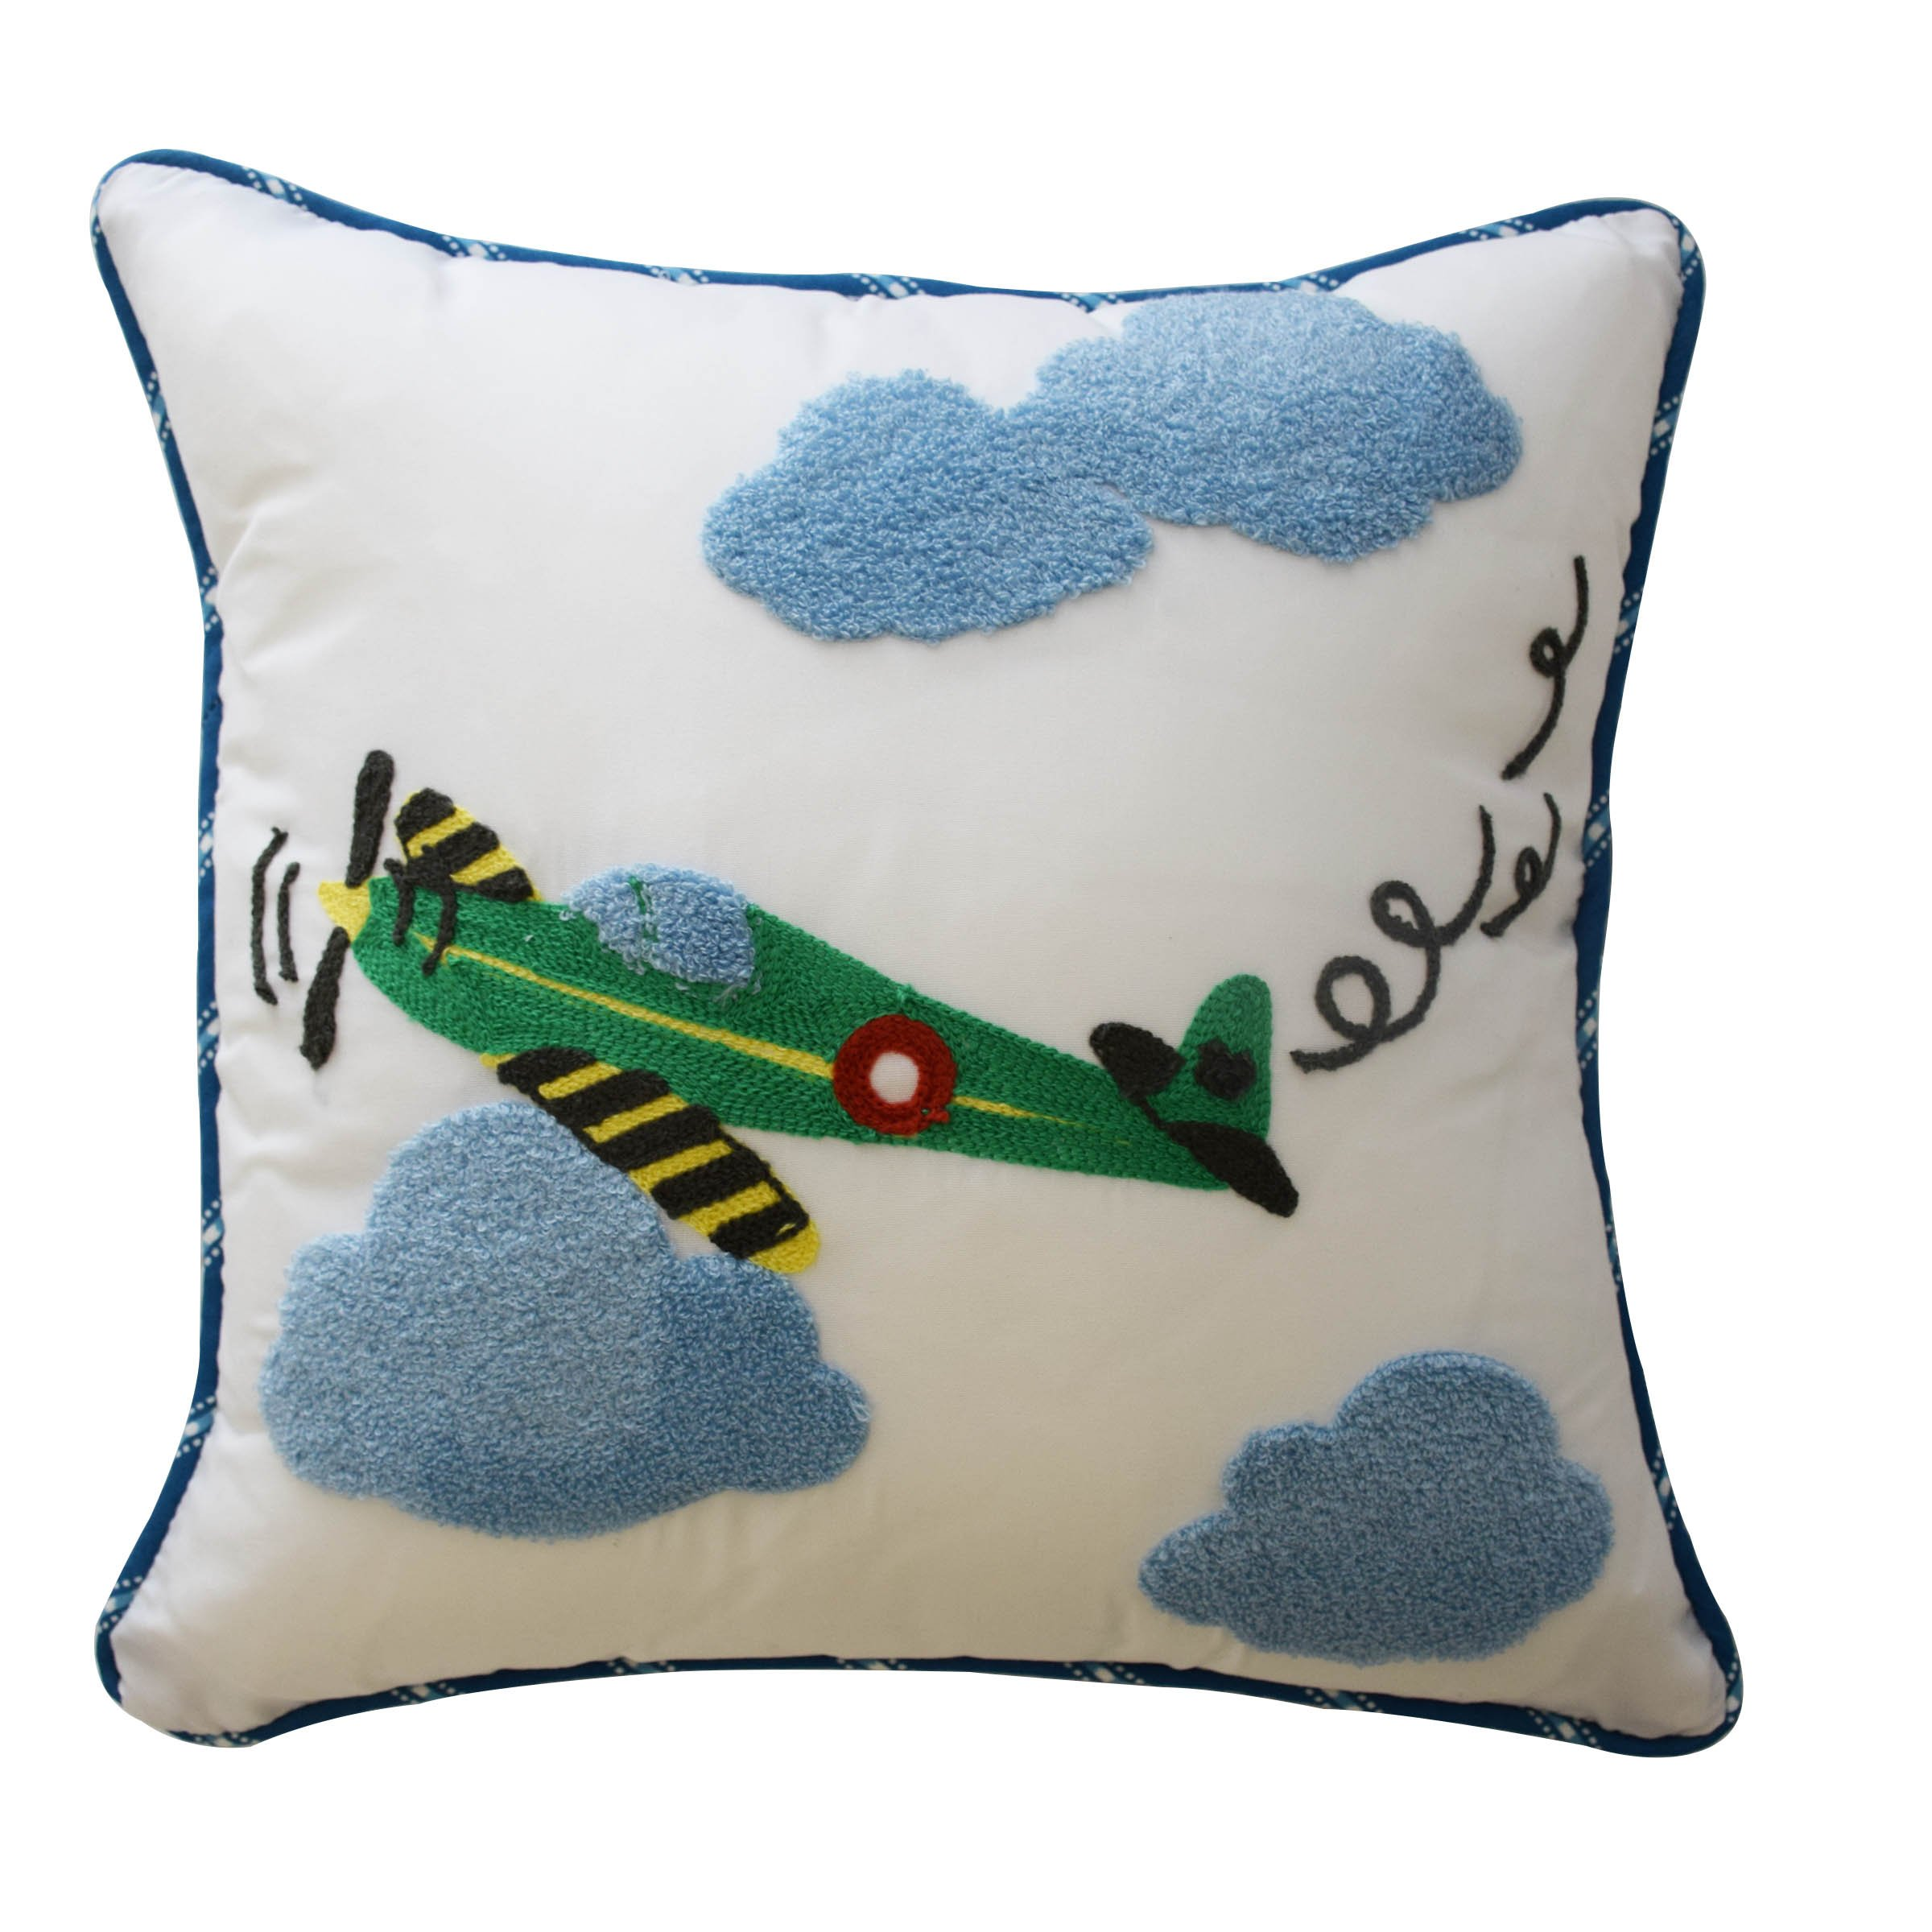 Waverly Kids 16444015X015BLU In The Clouds 15-Inch by 15-inch Airplane Decorative Accessory Pillow, Blue by WAVERLY